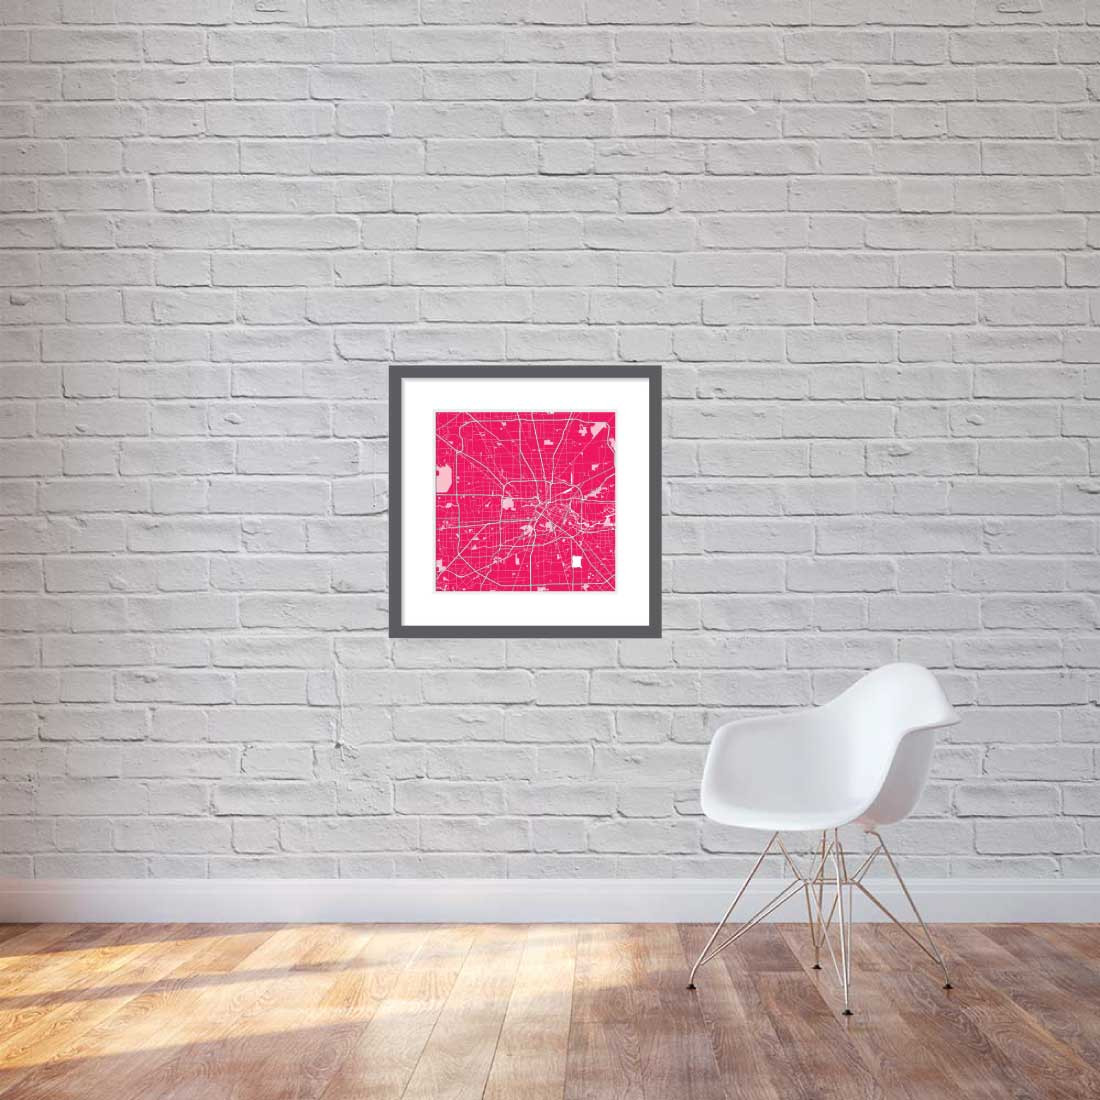 Matt print 60cmx60cm Houston Strawberry Milk